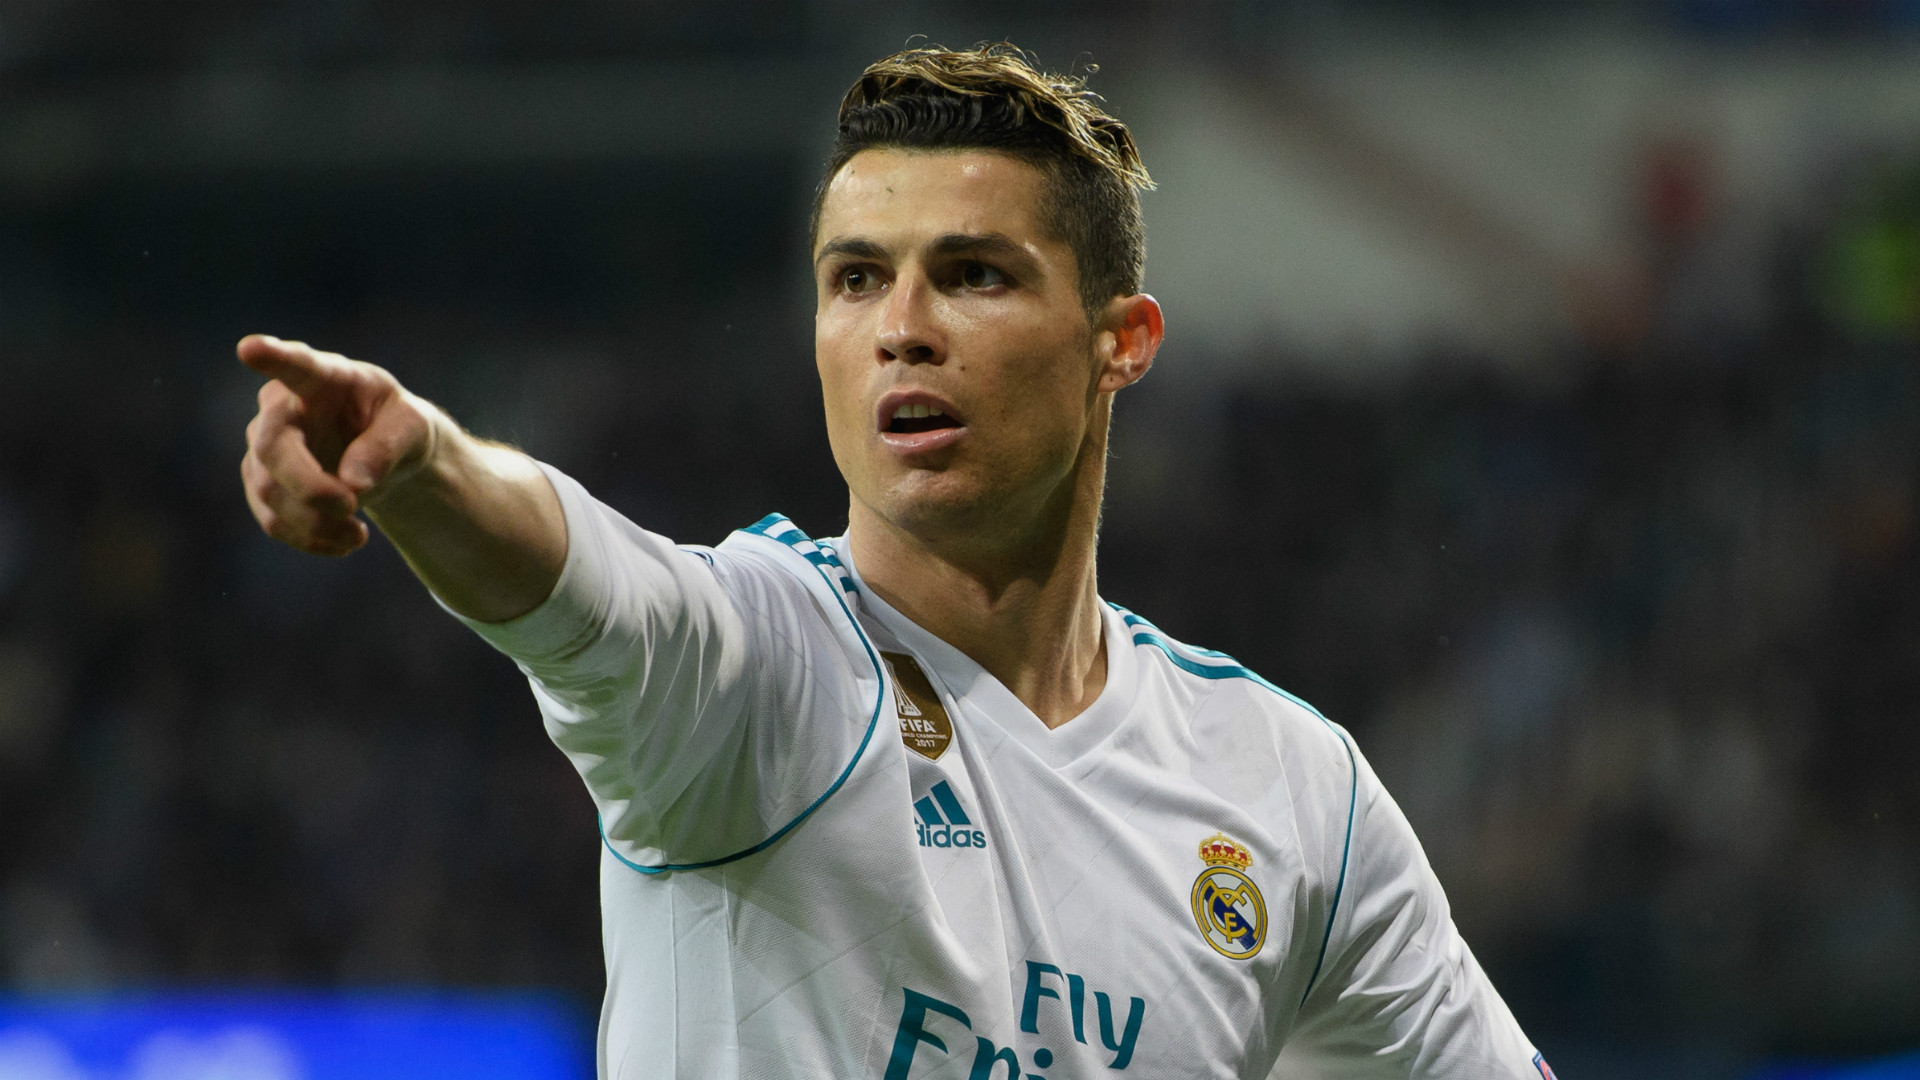 Manchester United reportedly interested in luring Ronaldo back to England